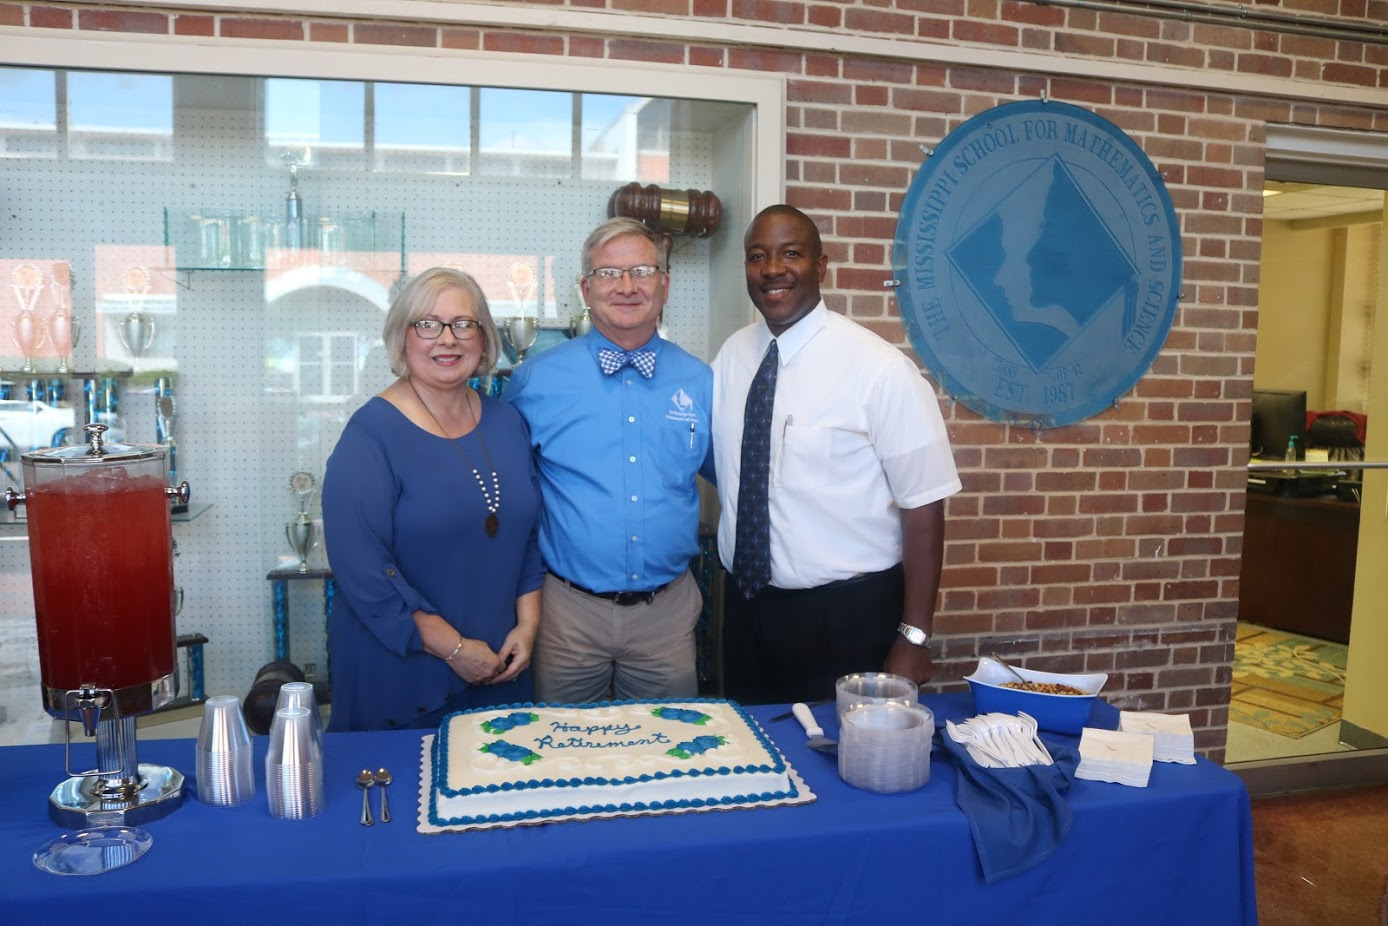 Rick Smith poses with his wife, Judy Smith, and Executive Director, Dr. Germain McConnell.